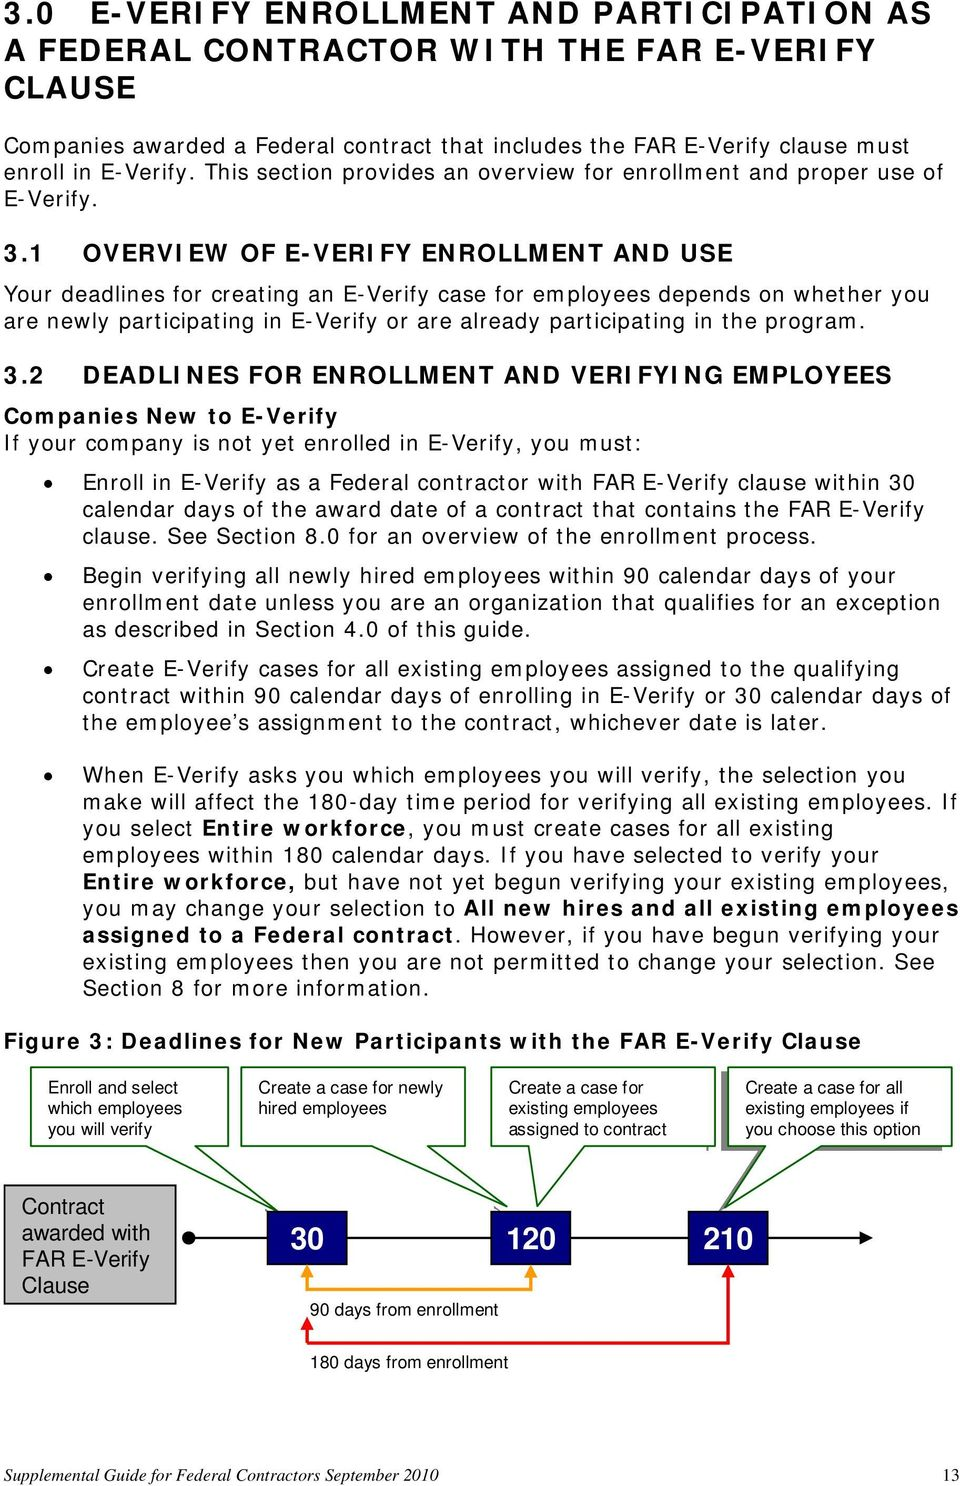 1 OVERVIEW OF E-VERIFY ENROLLMENT AND USE Your deadlines for creating an E-Verify case for employees depends on whether you are newly participating in E-Verify or are already participating in the